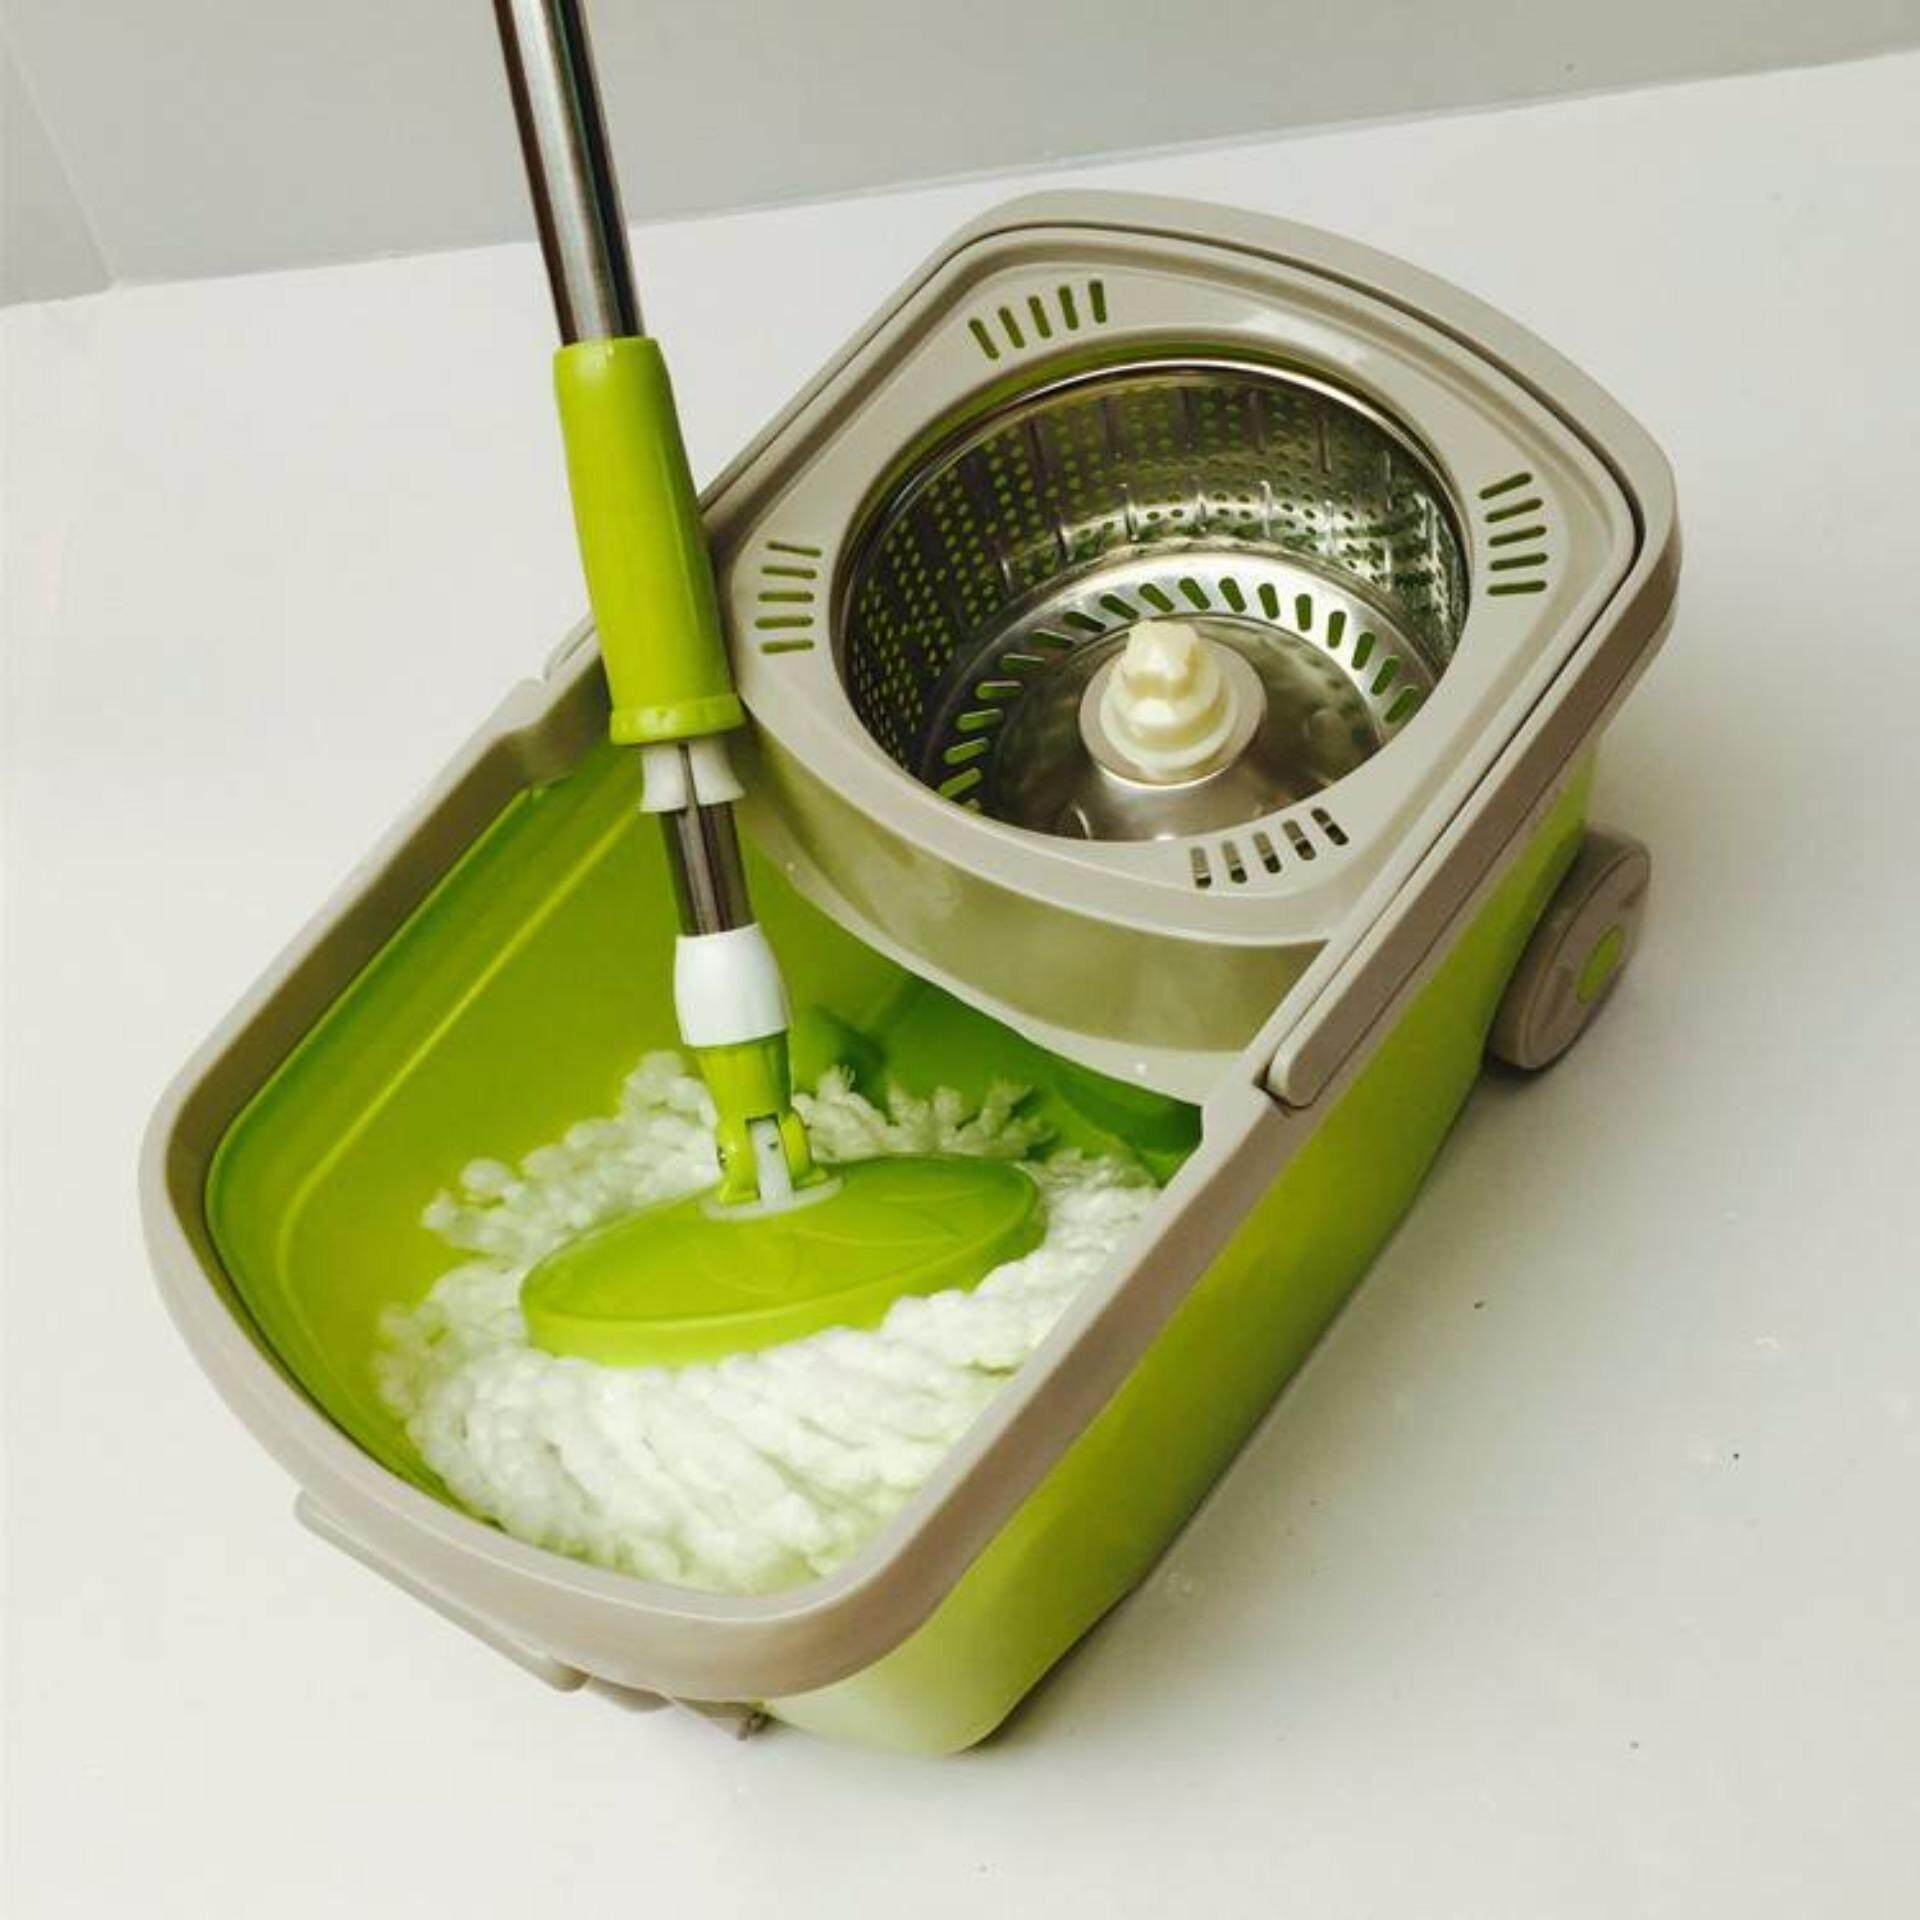 PREMIE Upgraded Stainless Steel Magic Spin Mop